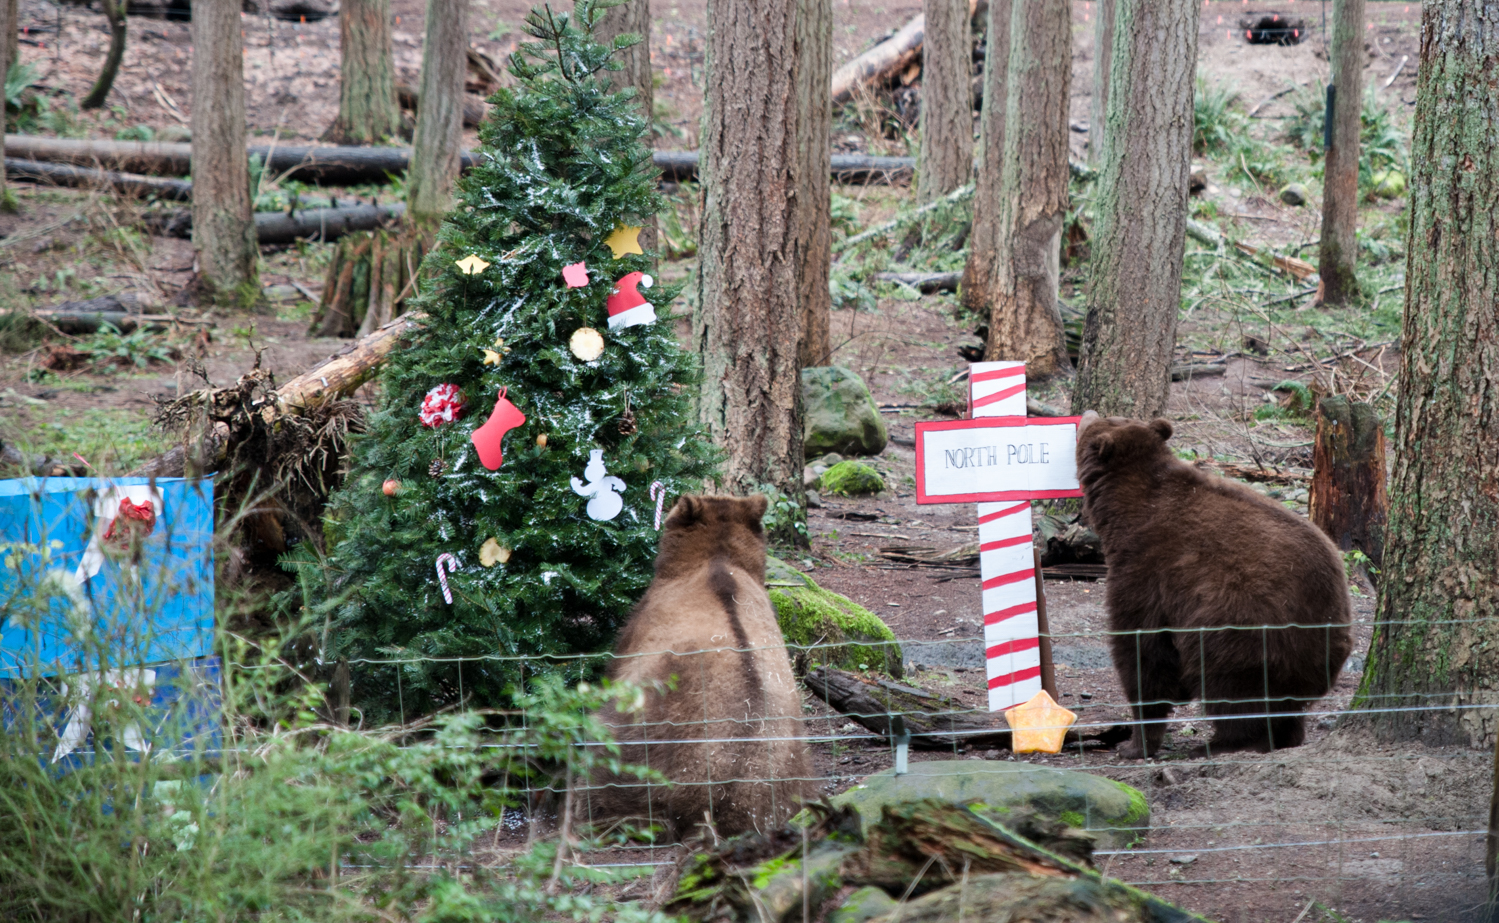 "Northwest Trek, the 723-acre wildlife park in Eatonville, WA is celebrating the holiday season with their Winter Wildland Wonderland! Happening this weekend only{&nbsp;} (Dec. 28/29) come see animals like badgers, grizzly bears, cougars, snowy owls, raccoons and gray wolves play with holiday themed treats in the crisp mountain air. Think cardboard sleighs, popsicles, mock-gingerbread houses and the like! Tickets are still on sale{&nbsp;}<a  href=""https://tickets.nwtrek.org/webstore/shop/ViewItems.aspx?CG=tetix&C=otix17"" target=""_blank"" title=""https://tickets.nwtrek.org/webstore/shop/ViewItems.aspx?CG=tetix&C=otix17"">online</a>. (Image: Elizabeth Crook / Seattle Refined)"